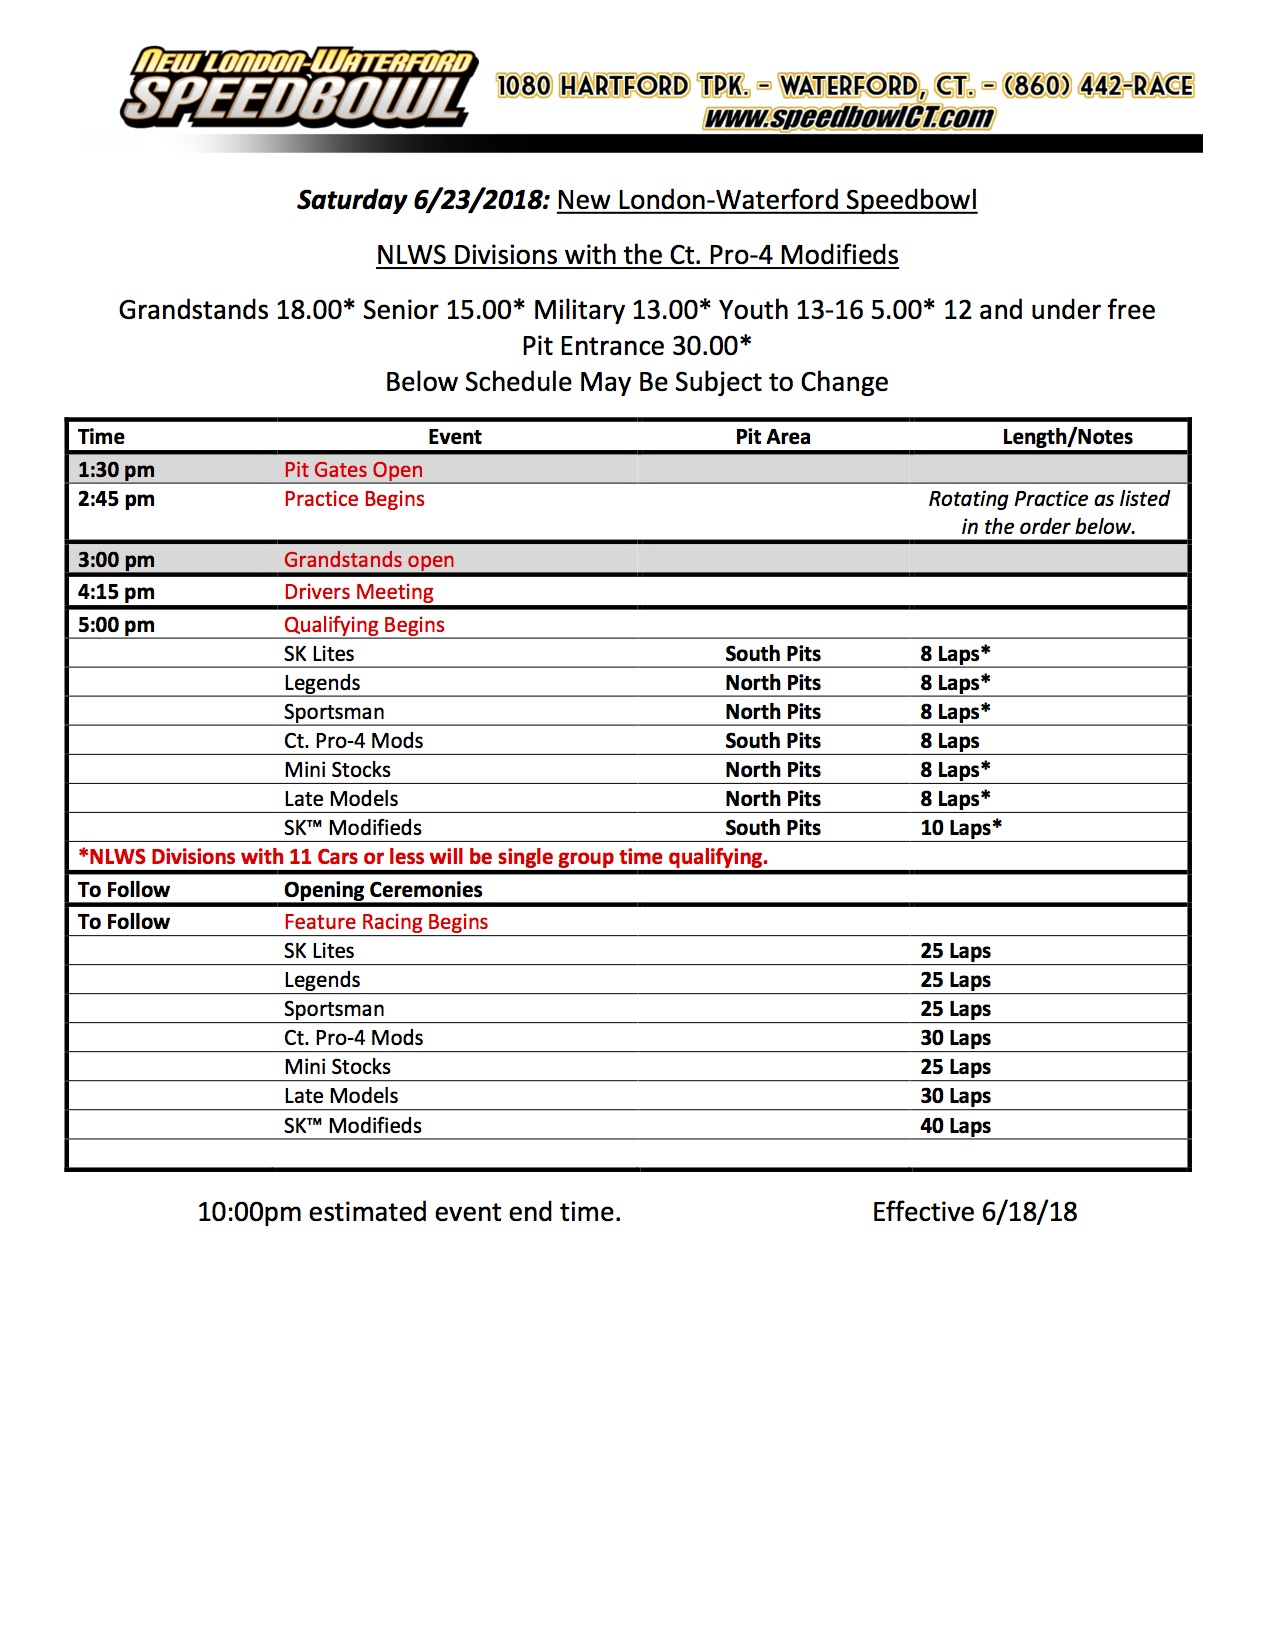 Saturday Race Day Schedule